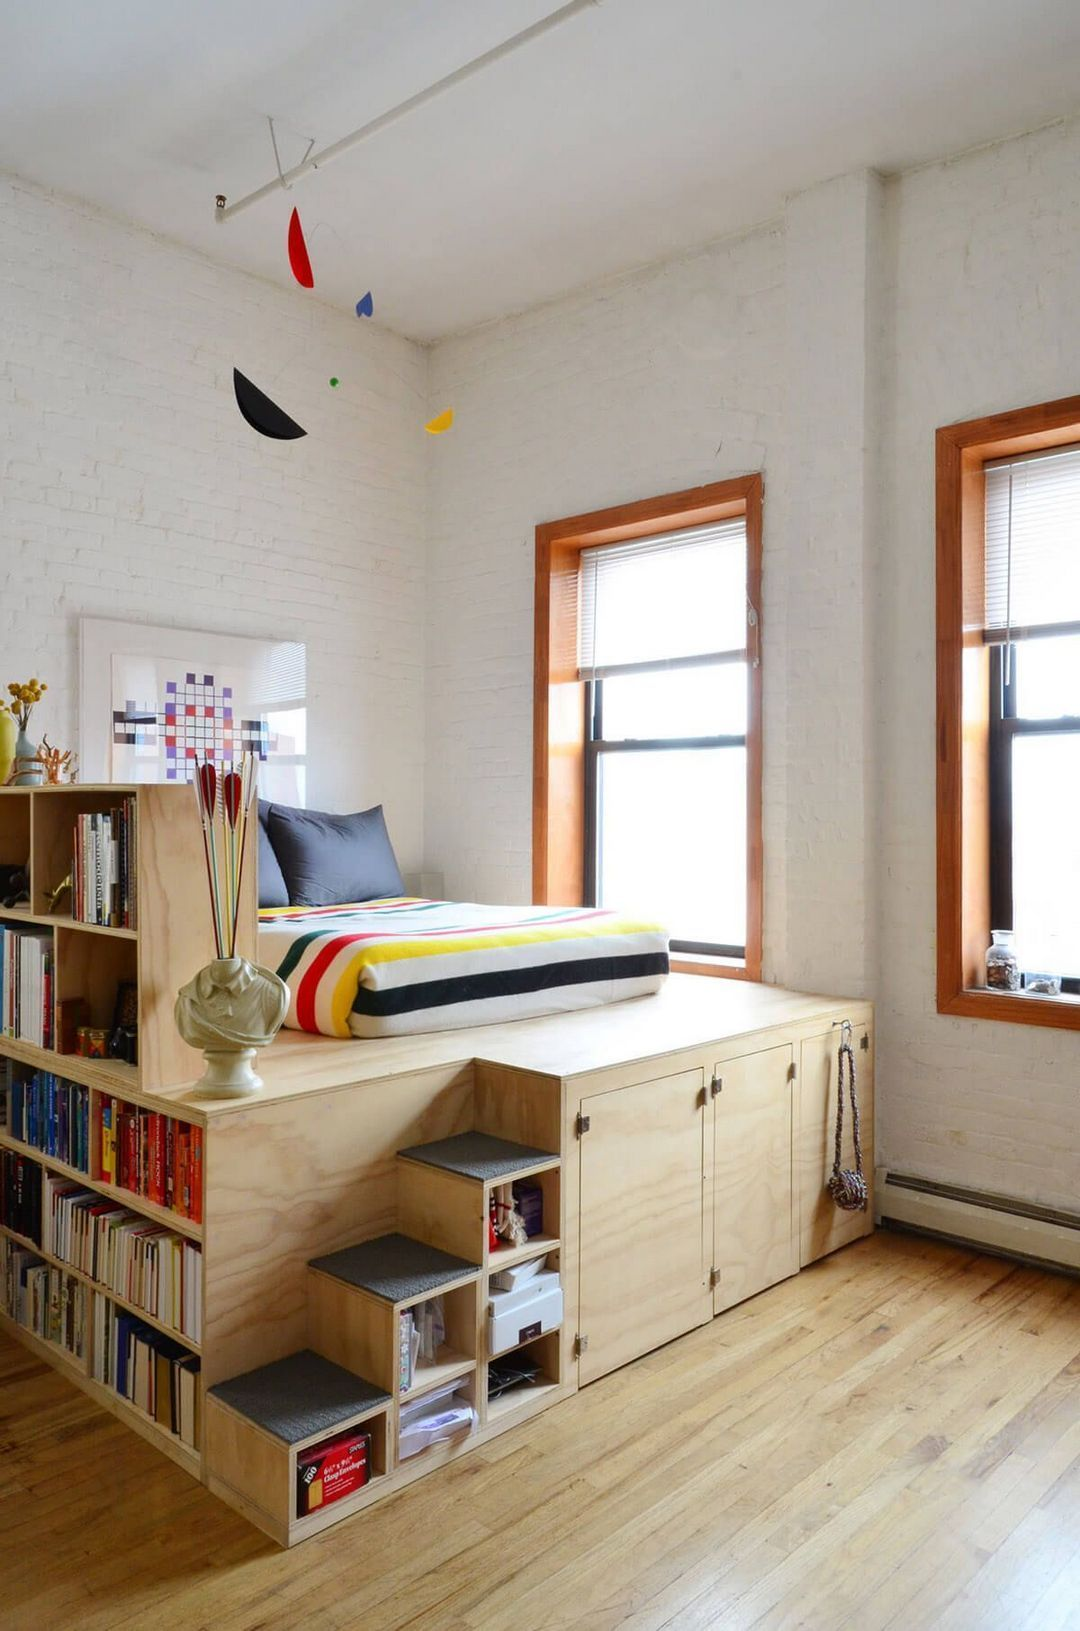 30 Secrets To Storage Ideas For Small Spaces Bedroom Diy Shelves 9